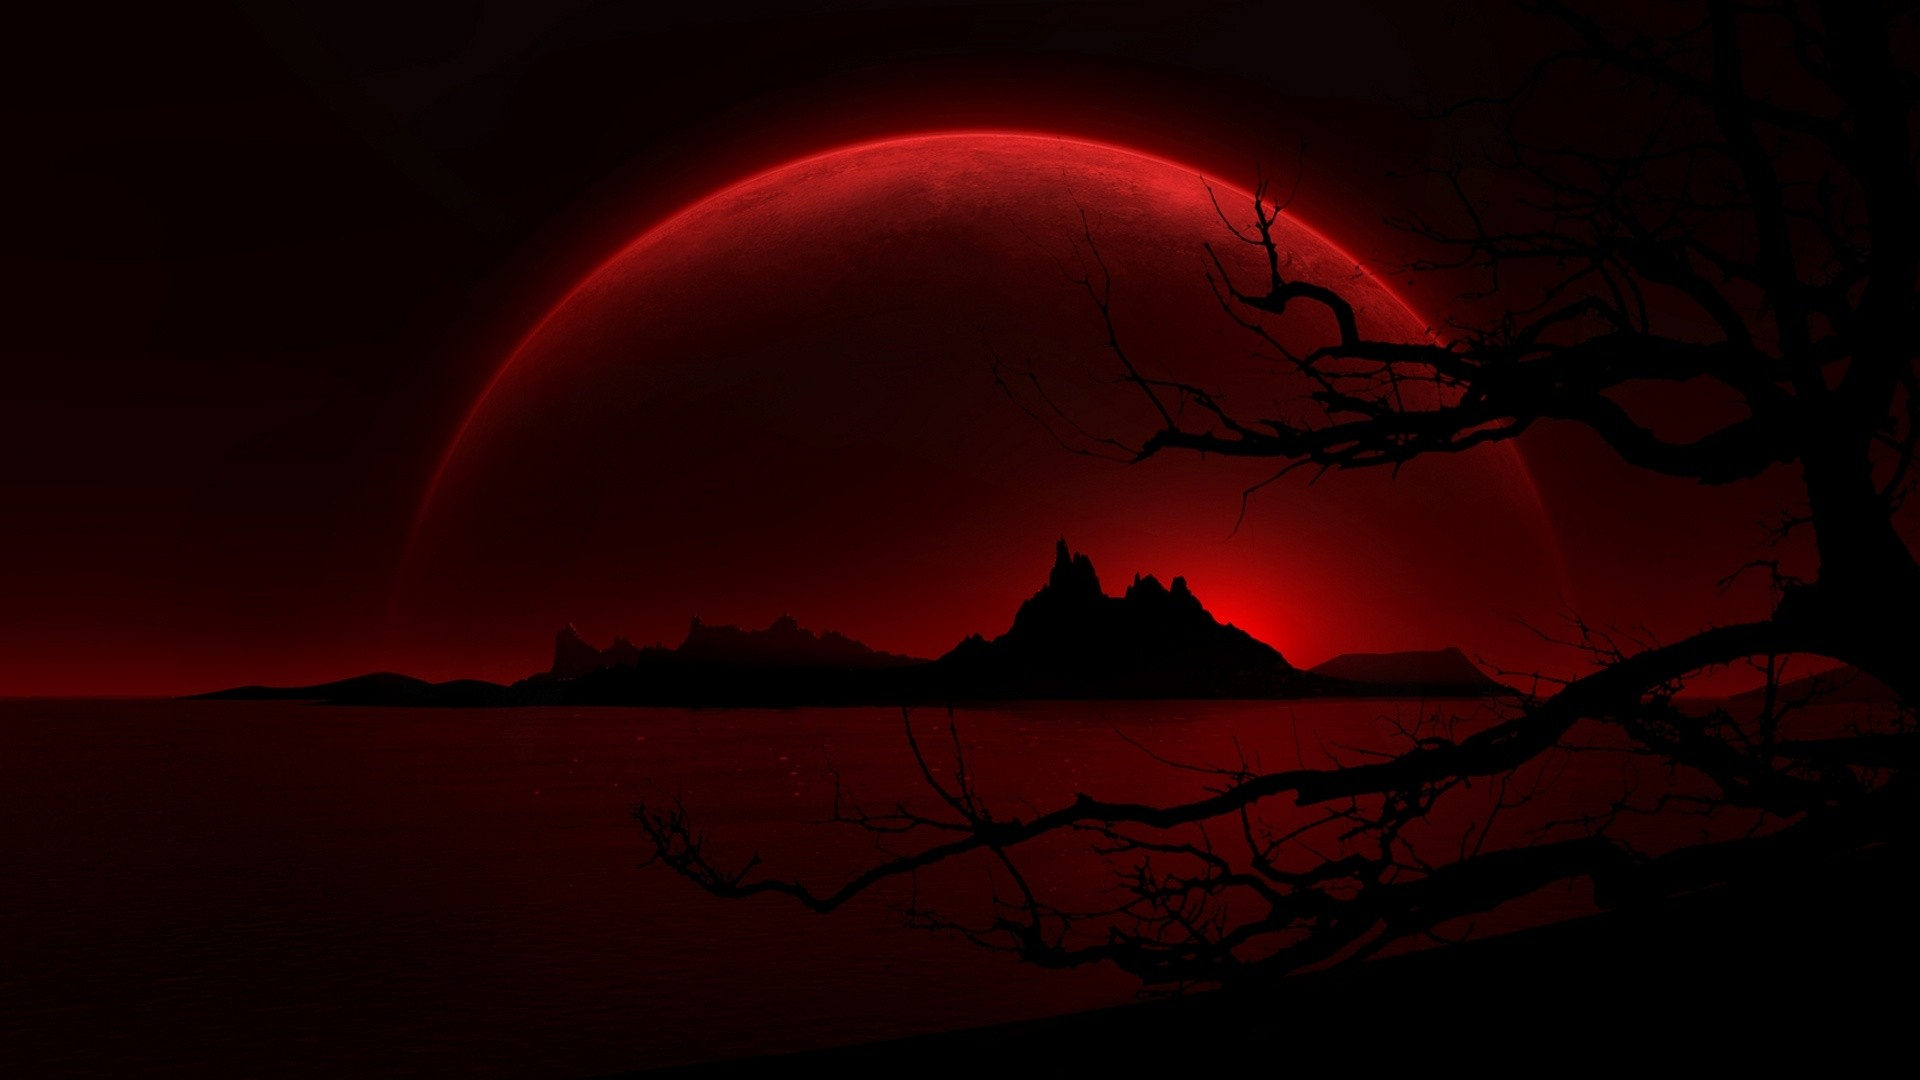 Red And Black Wallpaper Images 6 Free Hd Wallpaper. Red And Black Wallpaper  Images 6 Free Hd Wallpaper. …